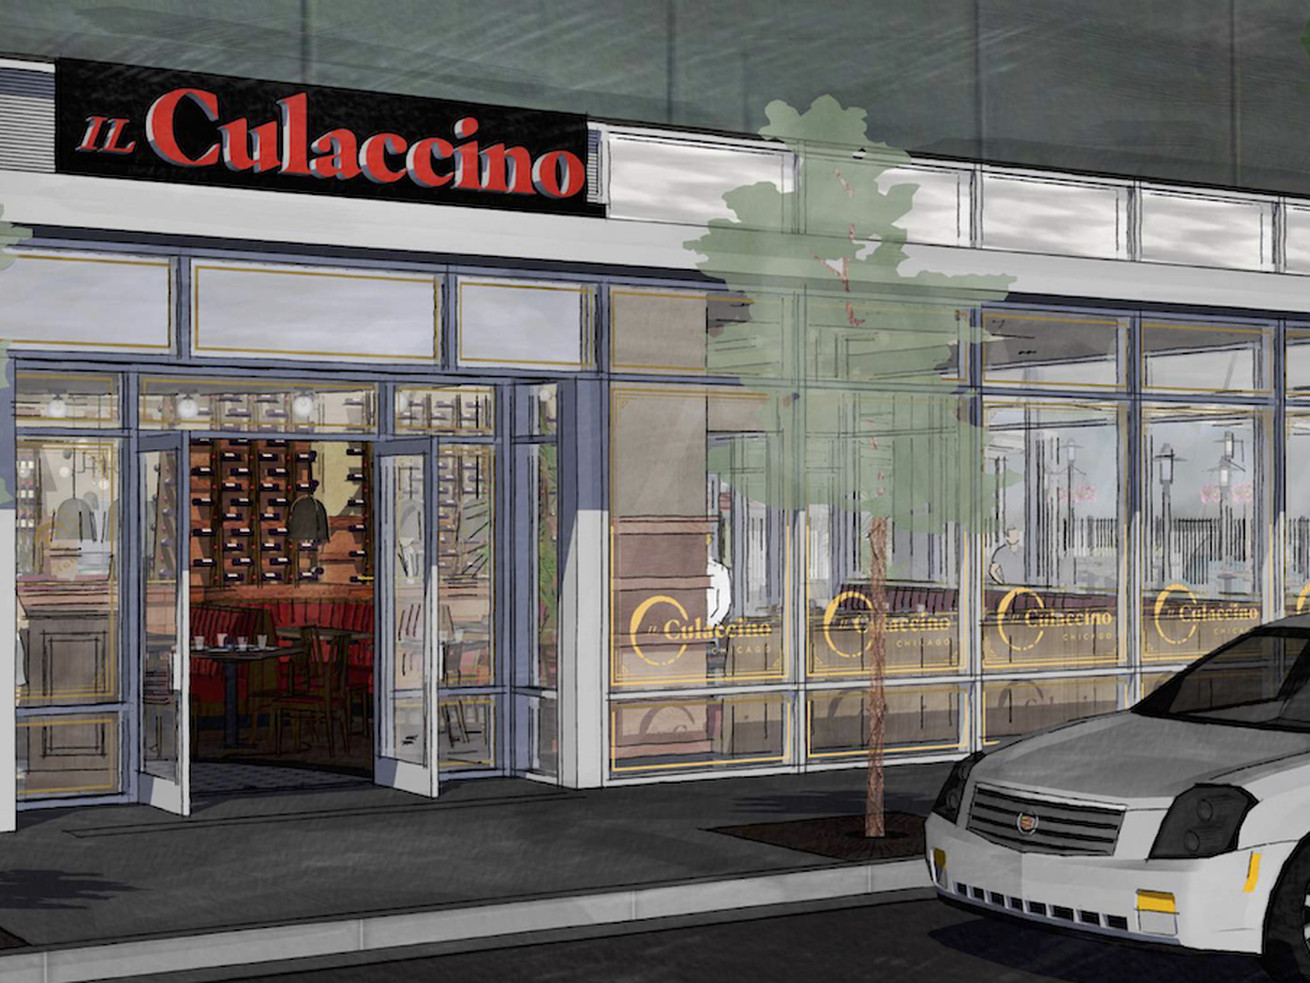 Il Culaccino is coming to McCormick.